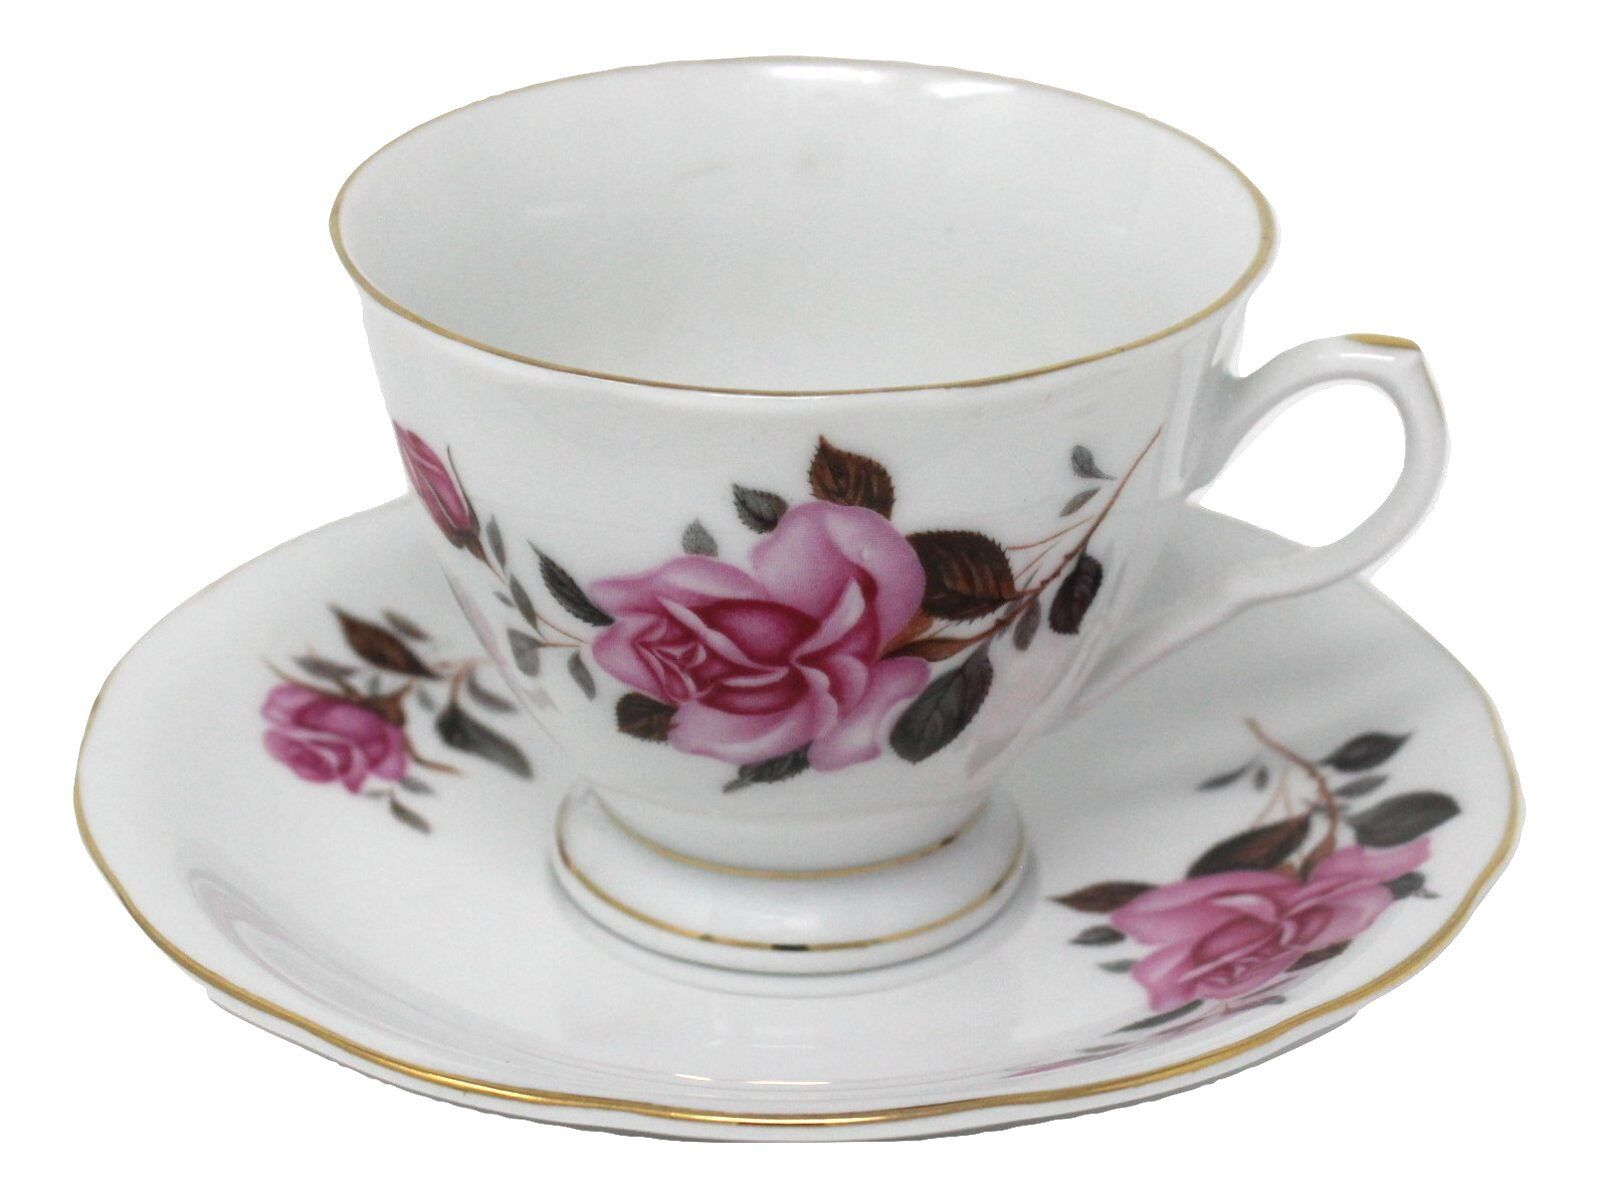 Vtg China Rose Footed Bone China Tea Cup and Saucer w/ Gold Trim